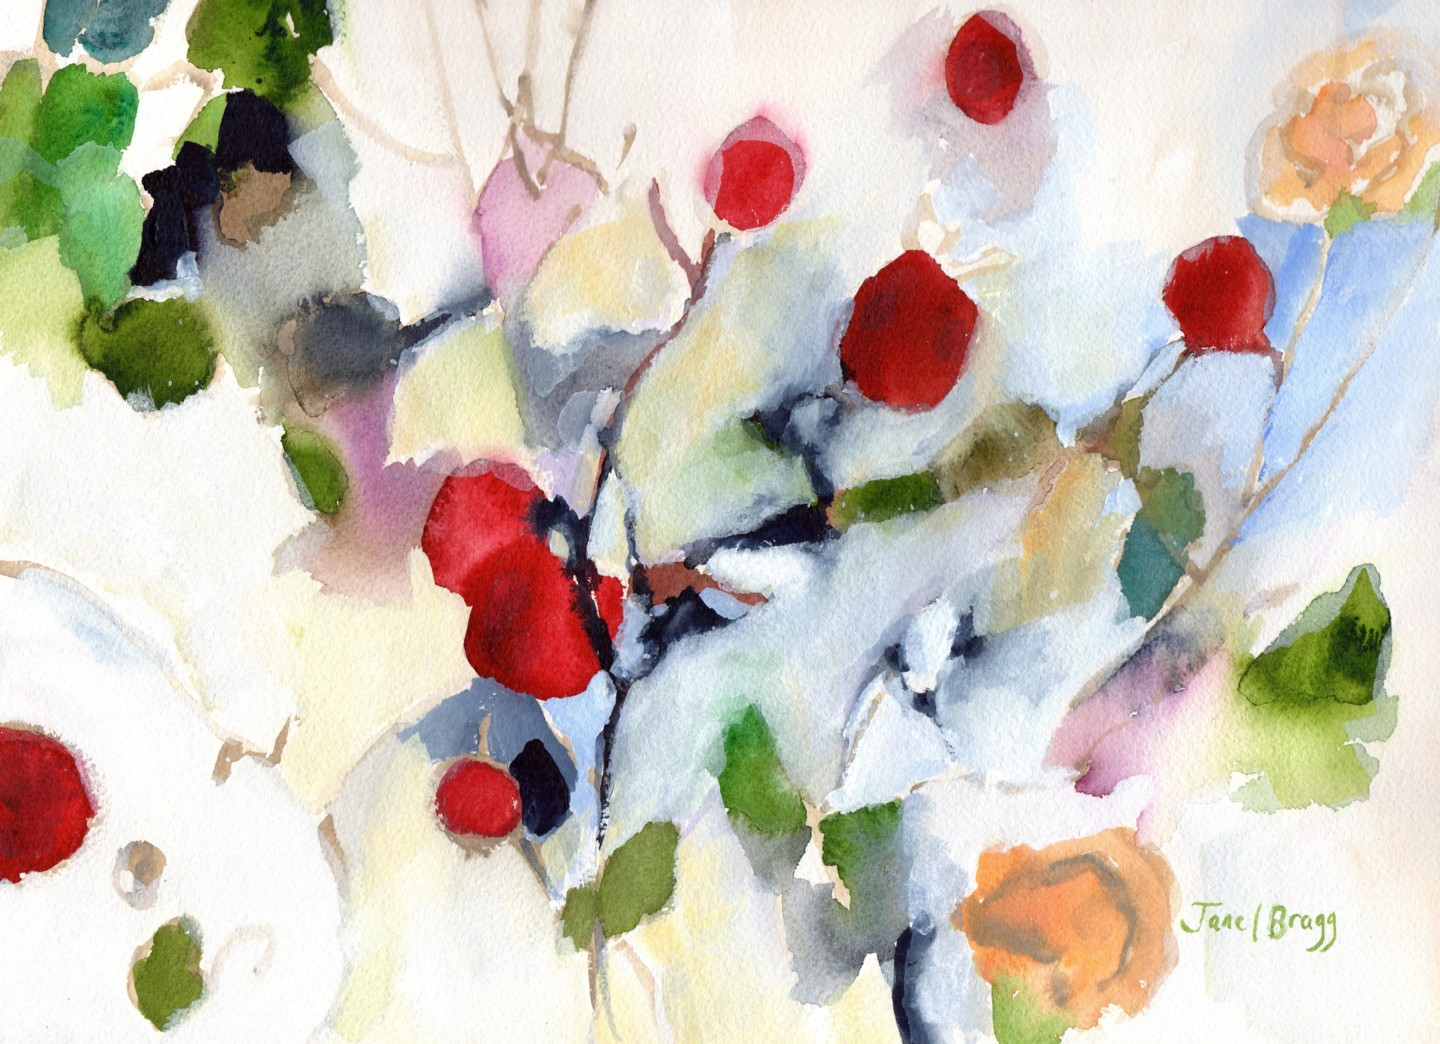 Janel Bragg - Rose Hips at Christmas II